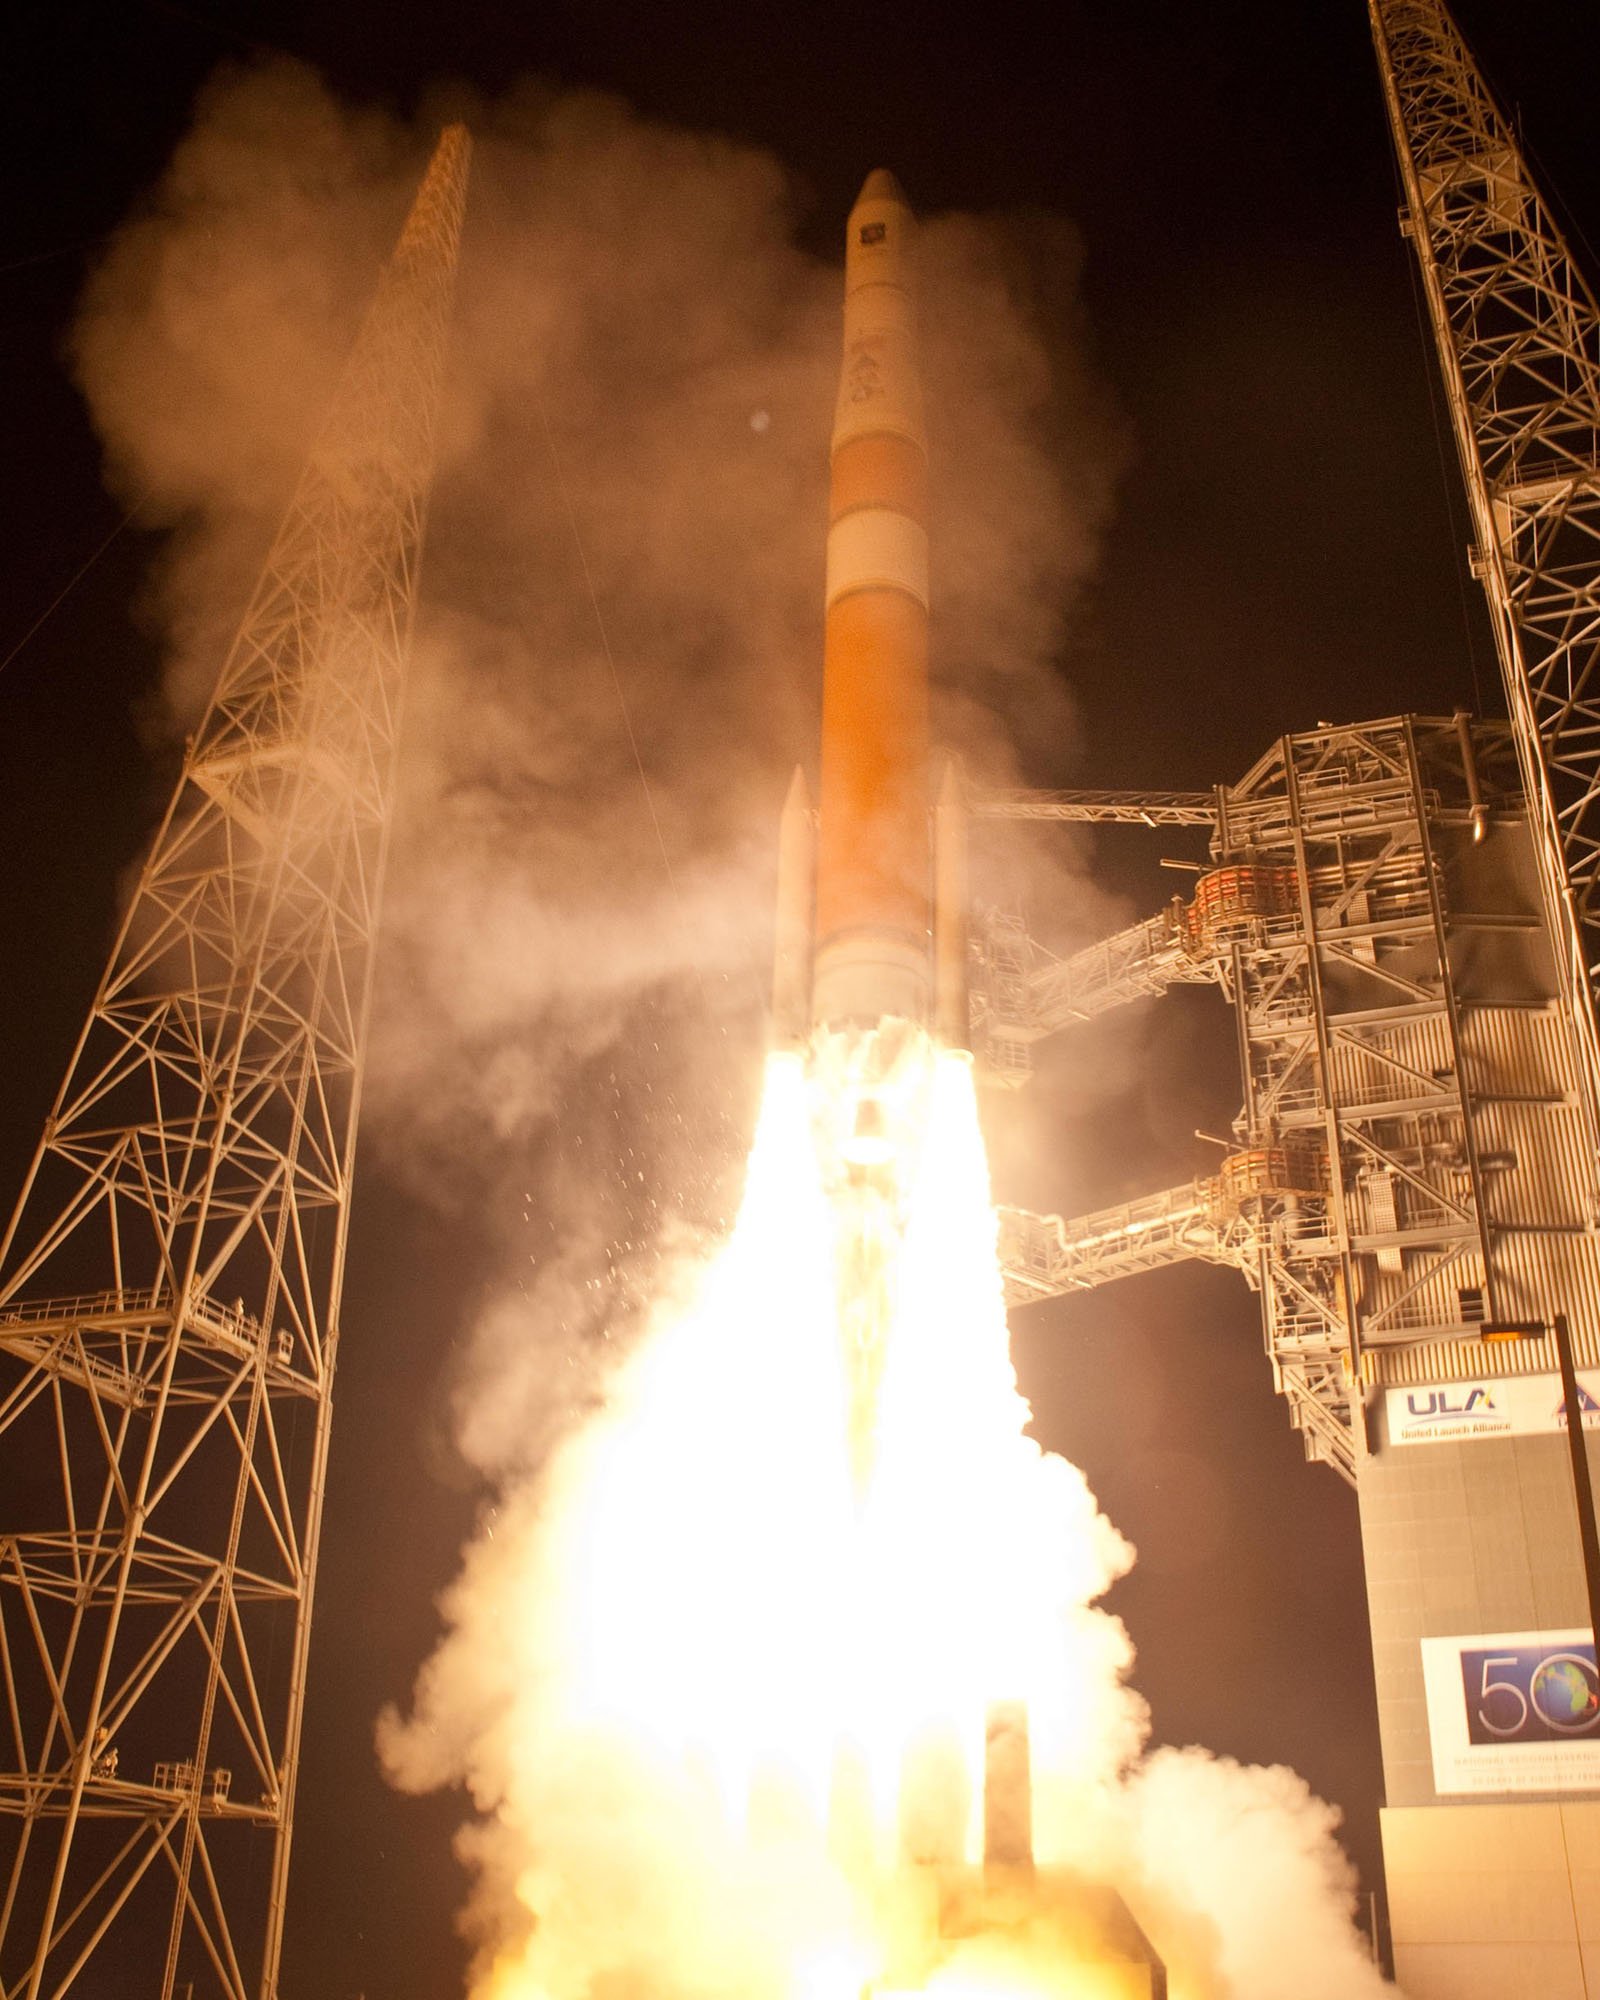 Delta 4 Rocket Blasts Off with GPS Satellite on July 16, 2011